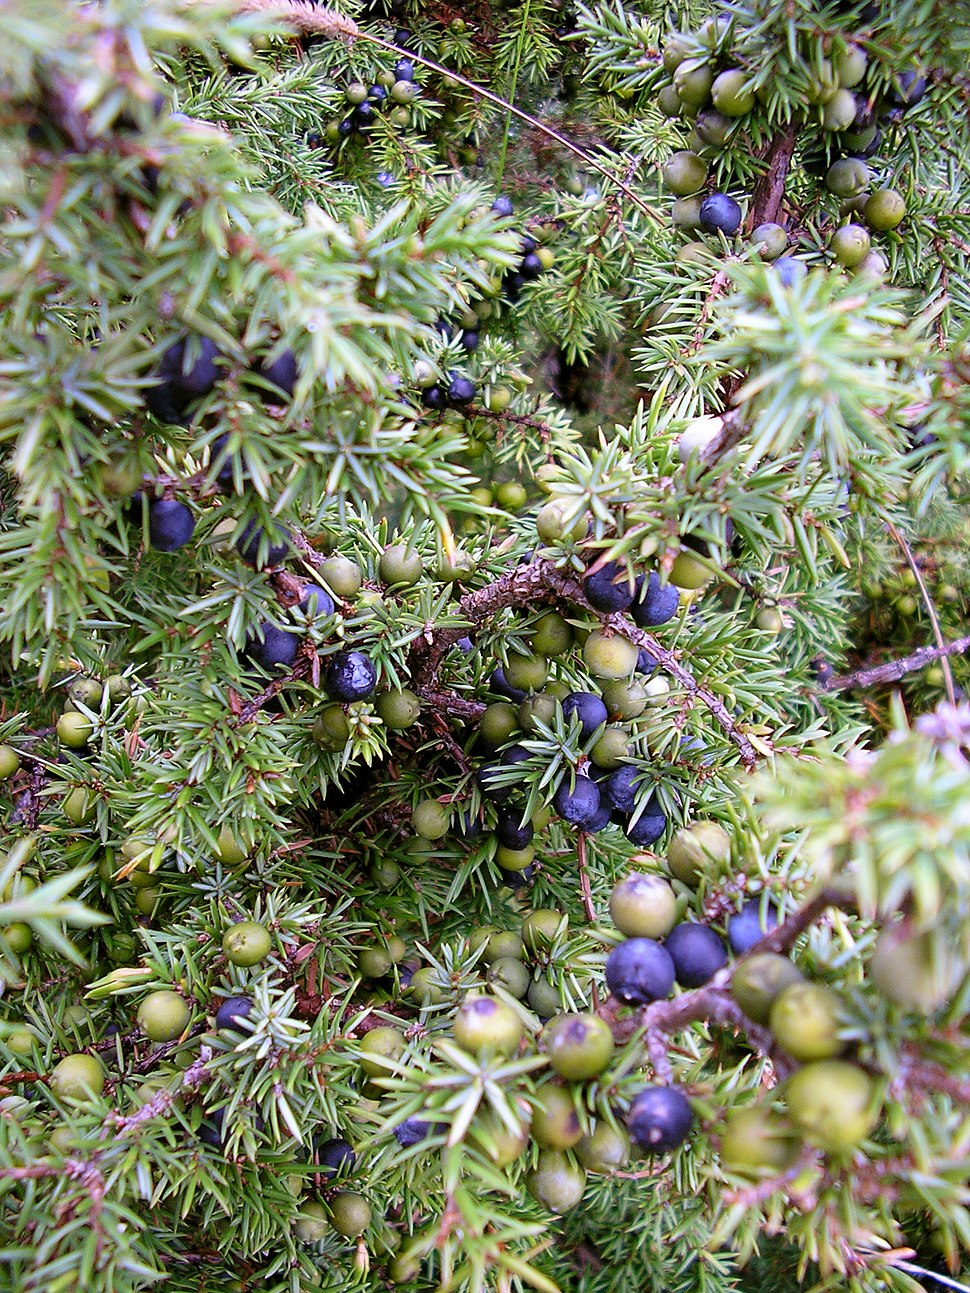 Juniperus communis at Valjala on 2005-08-11